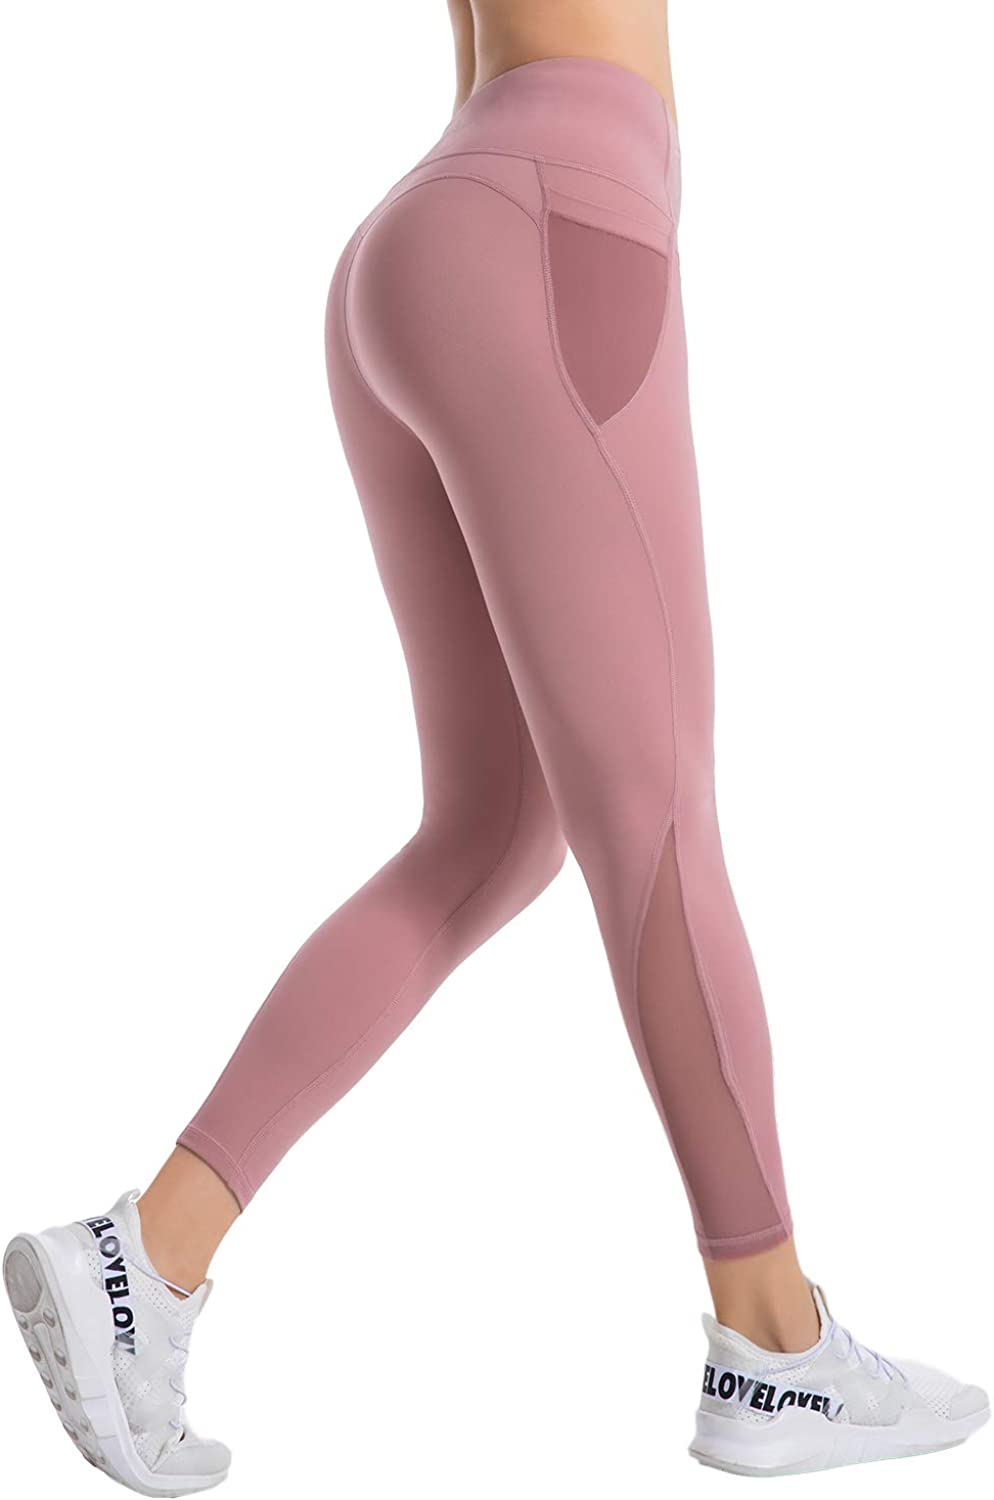 Women Workout Running Leggings Tummy Control Running Tights with Pockets for Women NOE High Waist Yoga Pants with Pockets